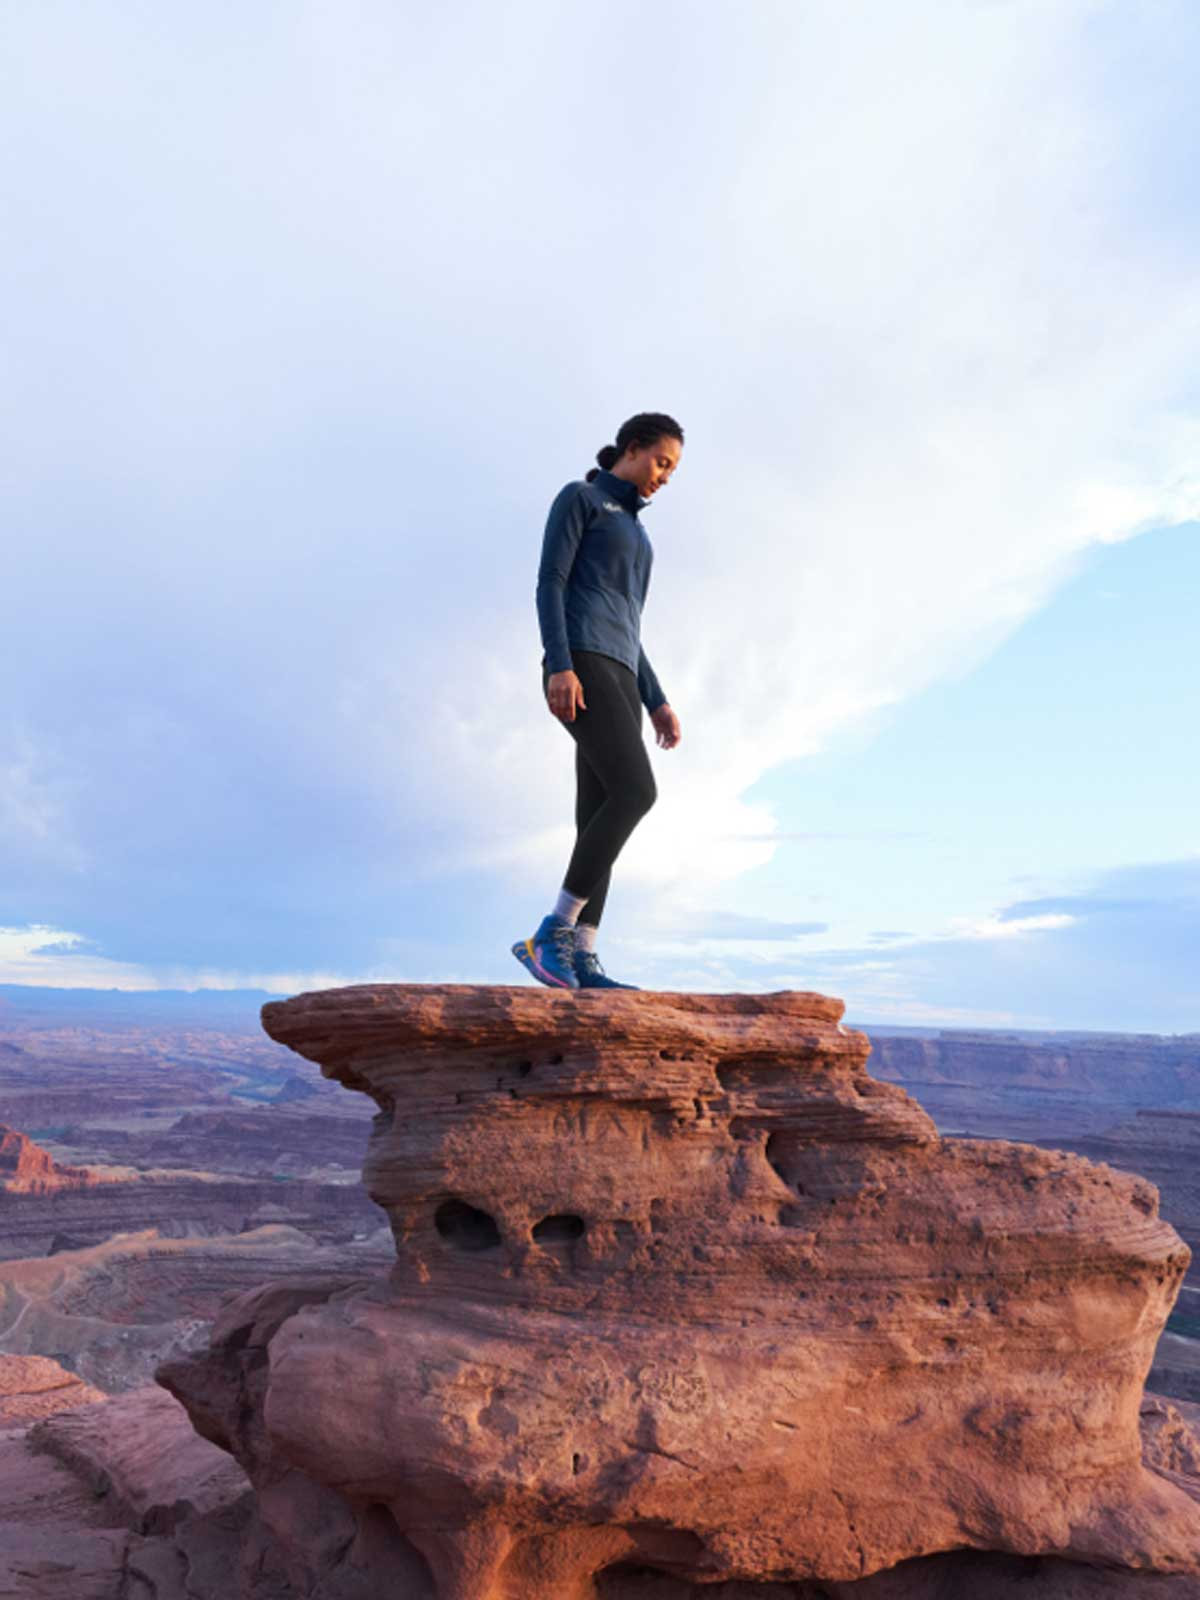 A woman standing on red rocks